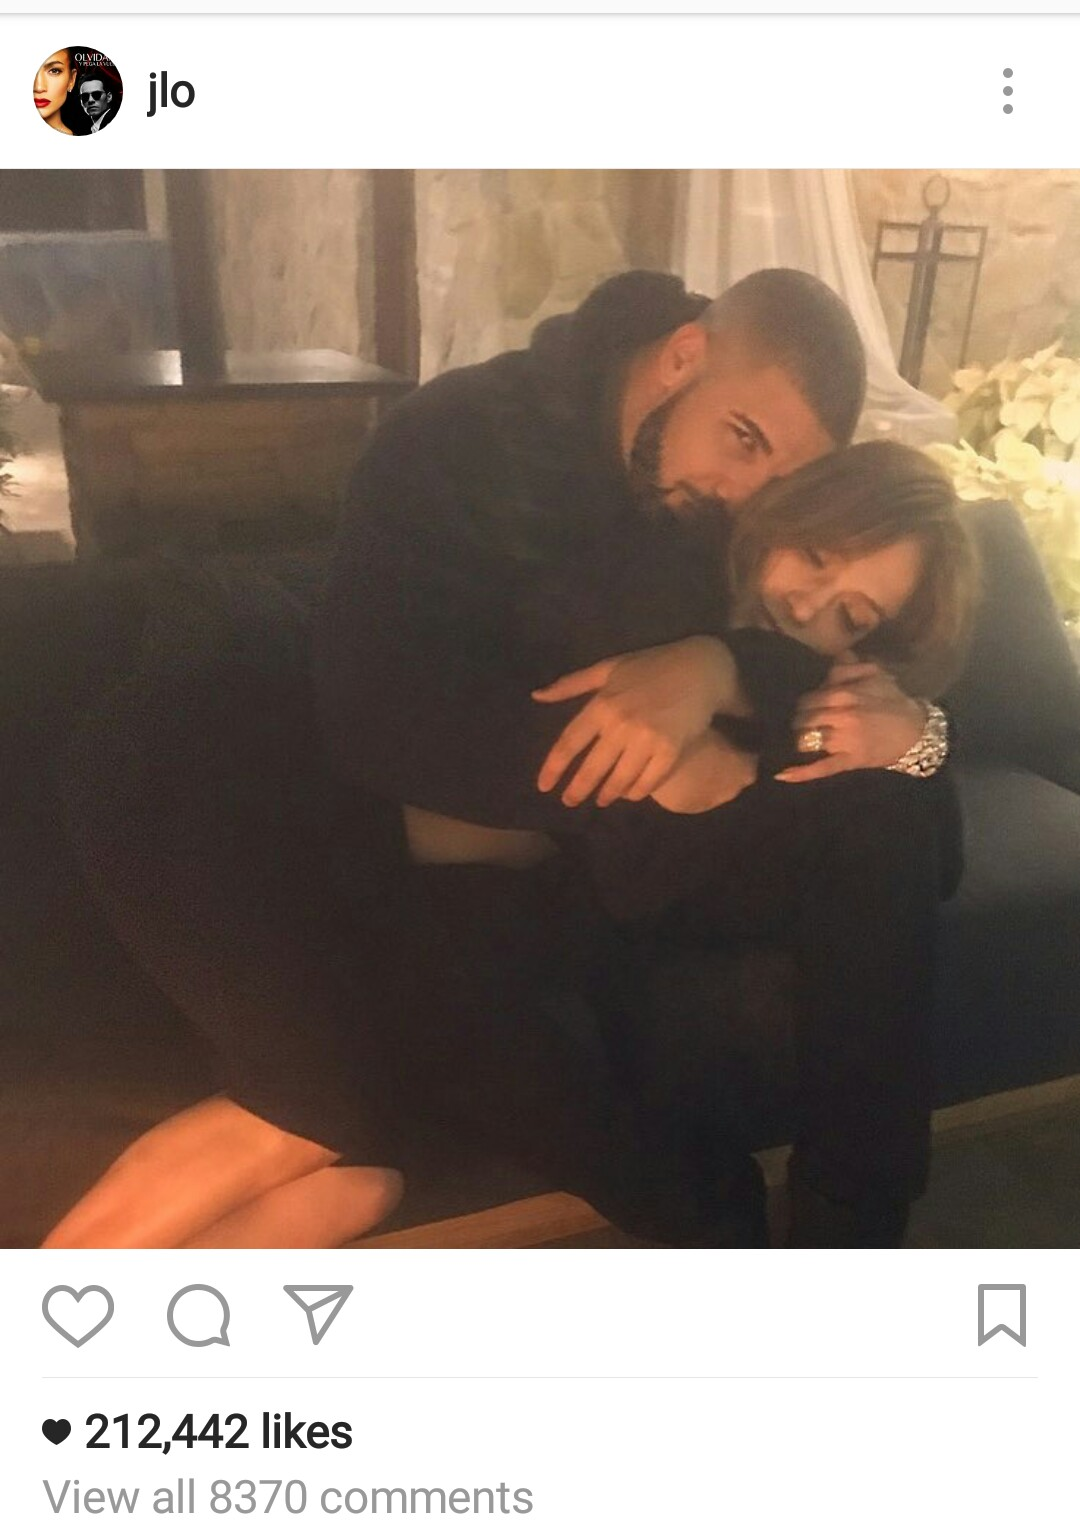 Drake And Jennifer Lopez Post Same Photo On Instagram At The Same Time